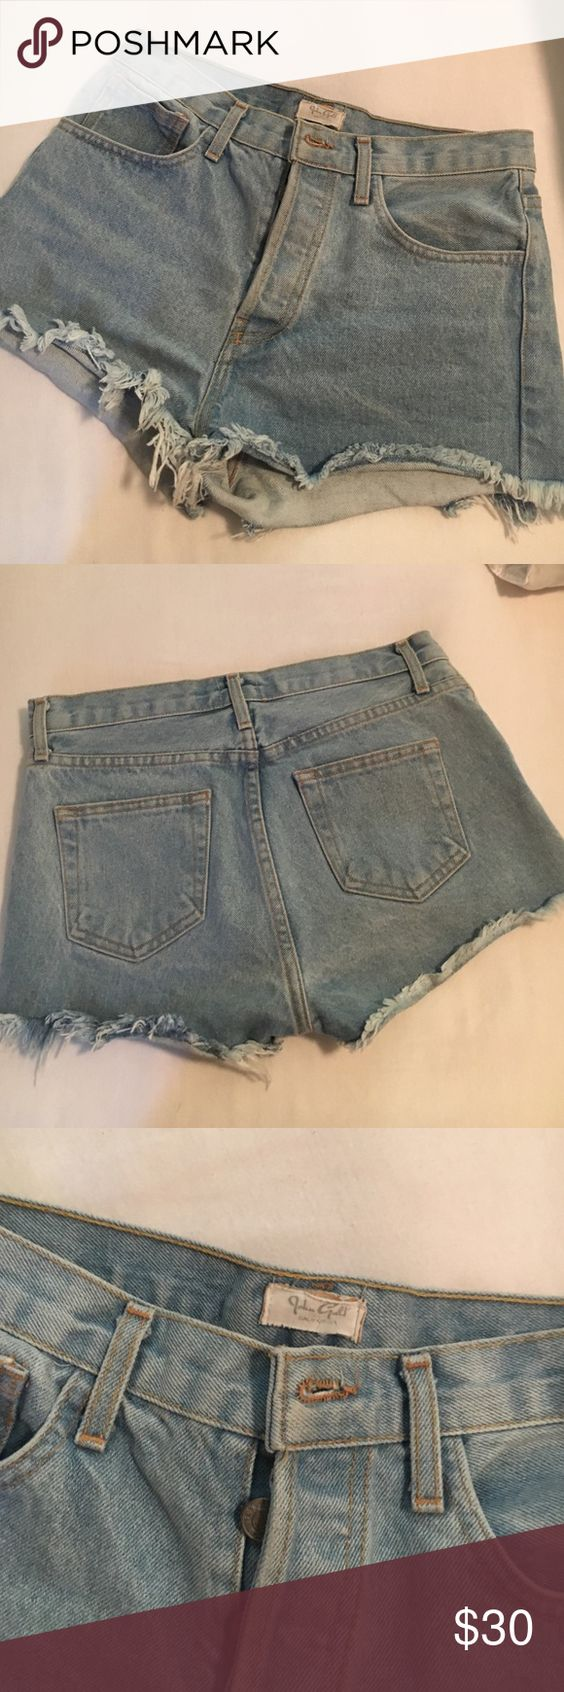 FLASH SALEbrandy Melville distressed jean shorts Amazing brandy Melville John Galt blue distressed denim Jean shorts!  I love them so much but they are a little big for me around the waist Brandy Melville Shorts Jean Shorts